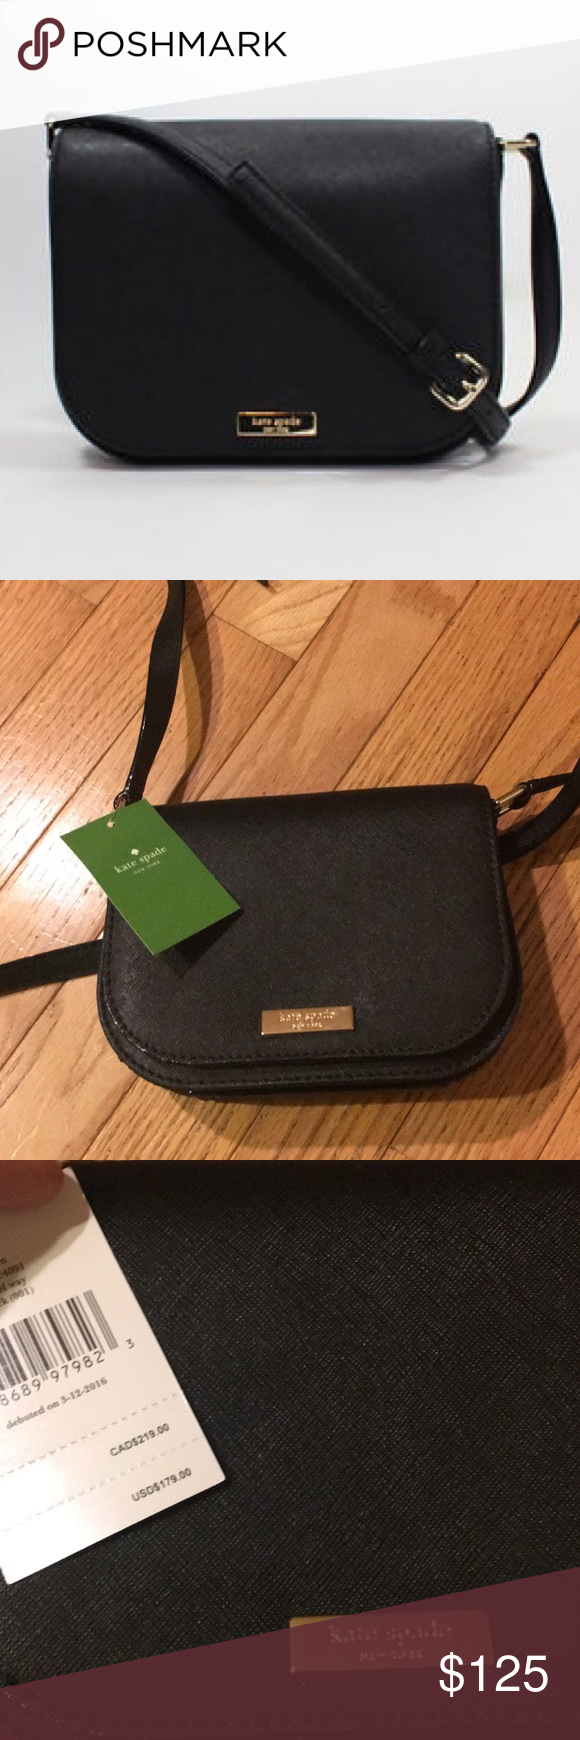 NWT Kate Spade Crossbody Adorable and classic Kate Spade NY black Crossbody. Perfect size and goes with everything. Adjustable strap. Multiple compartments and snaps shut. Style: Laurel Way black. Purchased at a Kate Spade store kate spade Bags Crossbody Bags